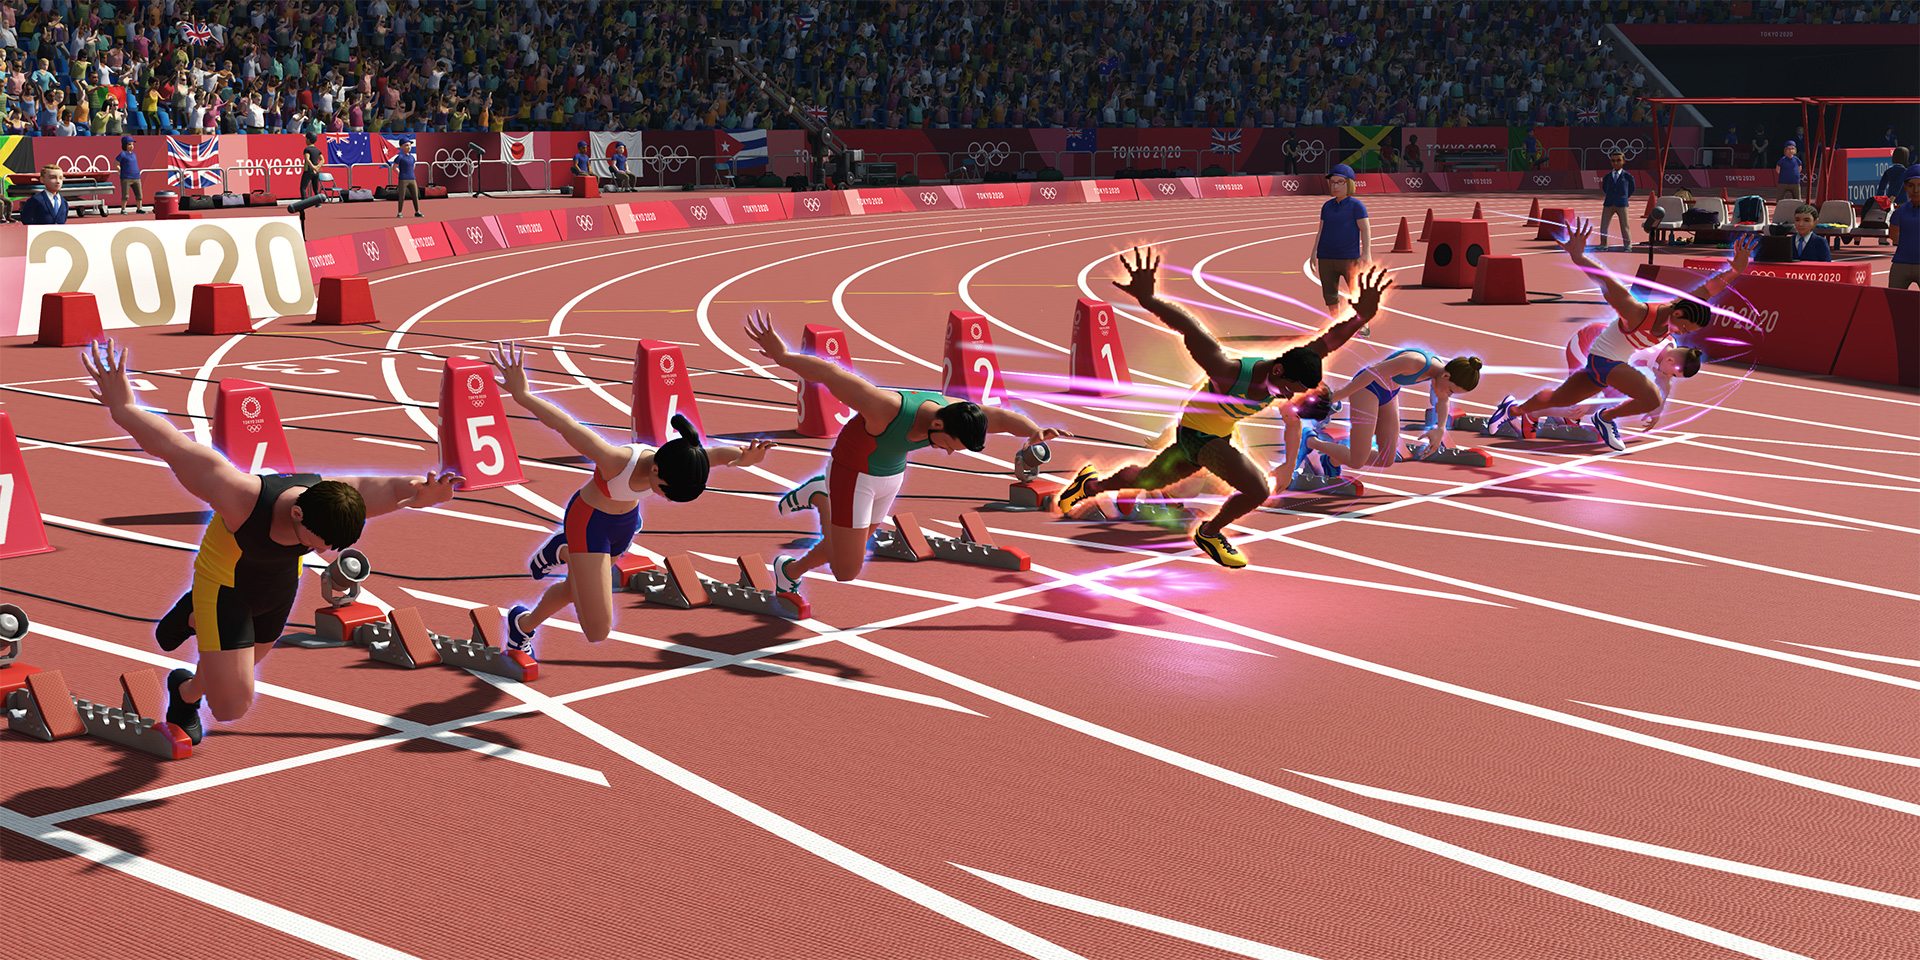 Olympic Games Tokyo 2020 The Official VideoGame 2019 04 23 19 001